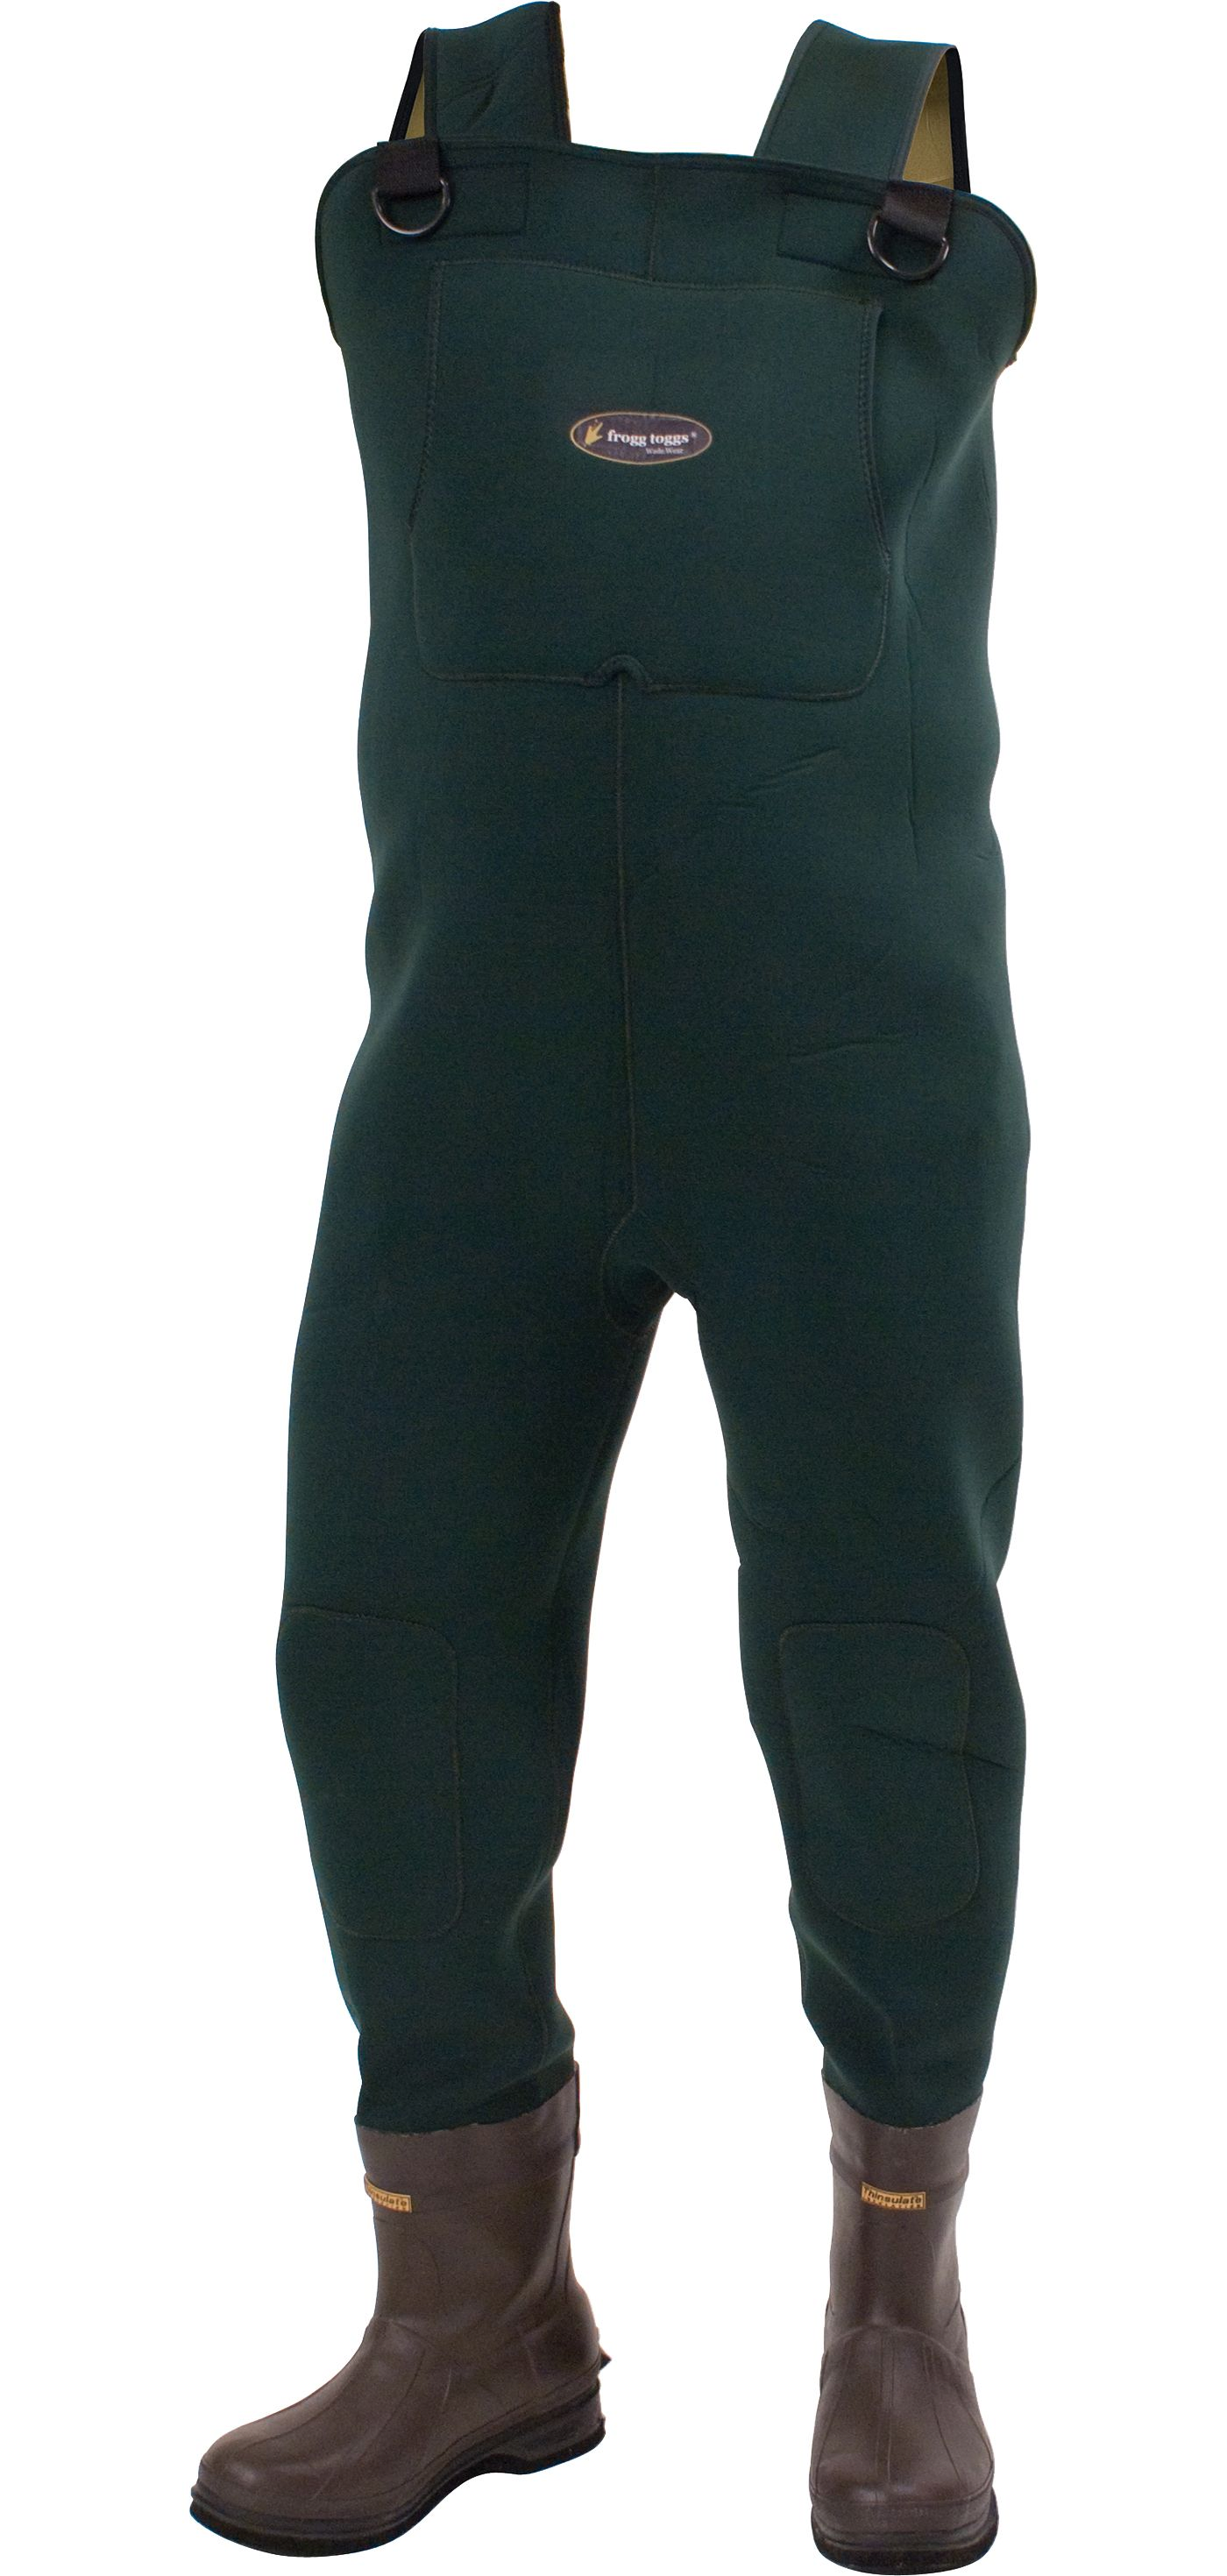 frogg toggs Amphib Neoprene Cleated Chest Waders